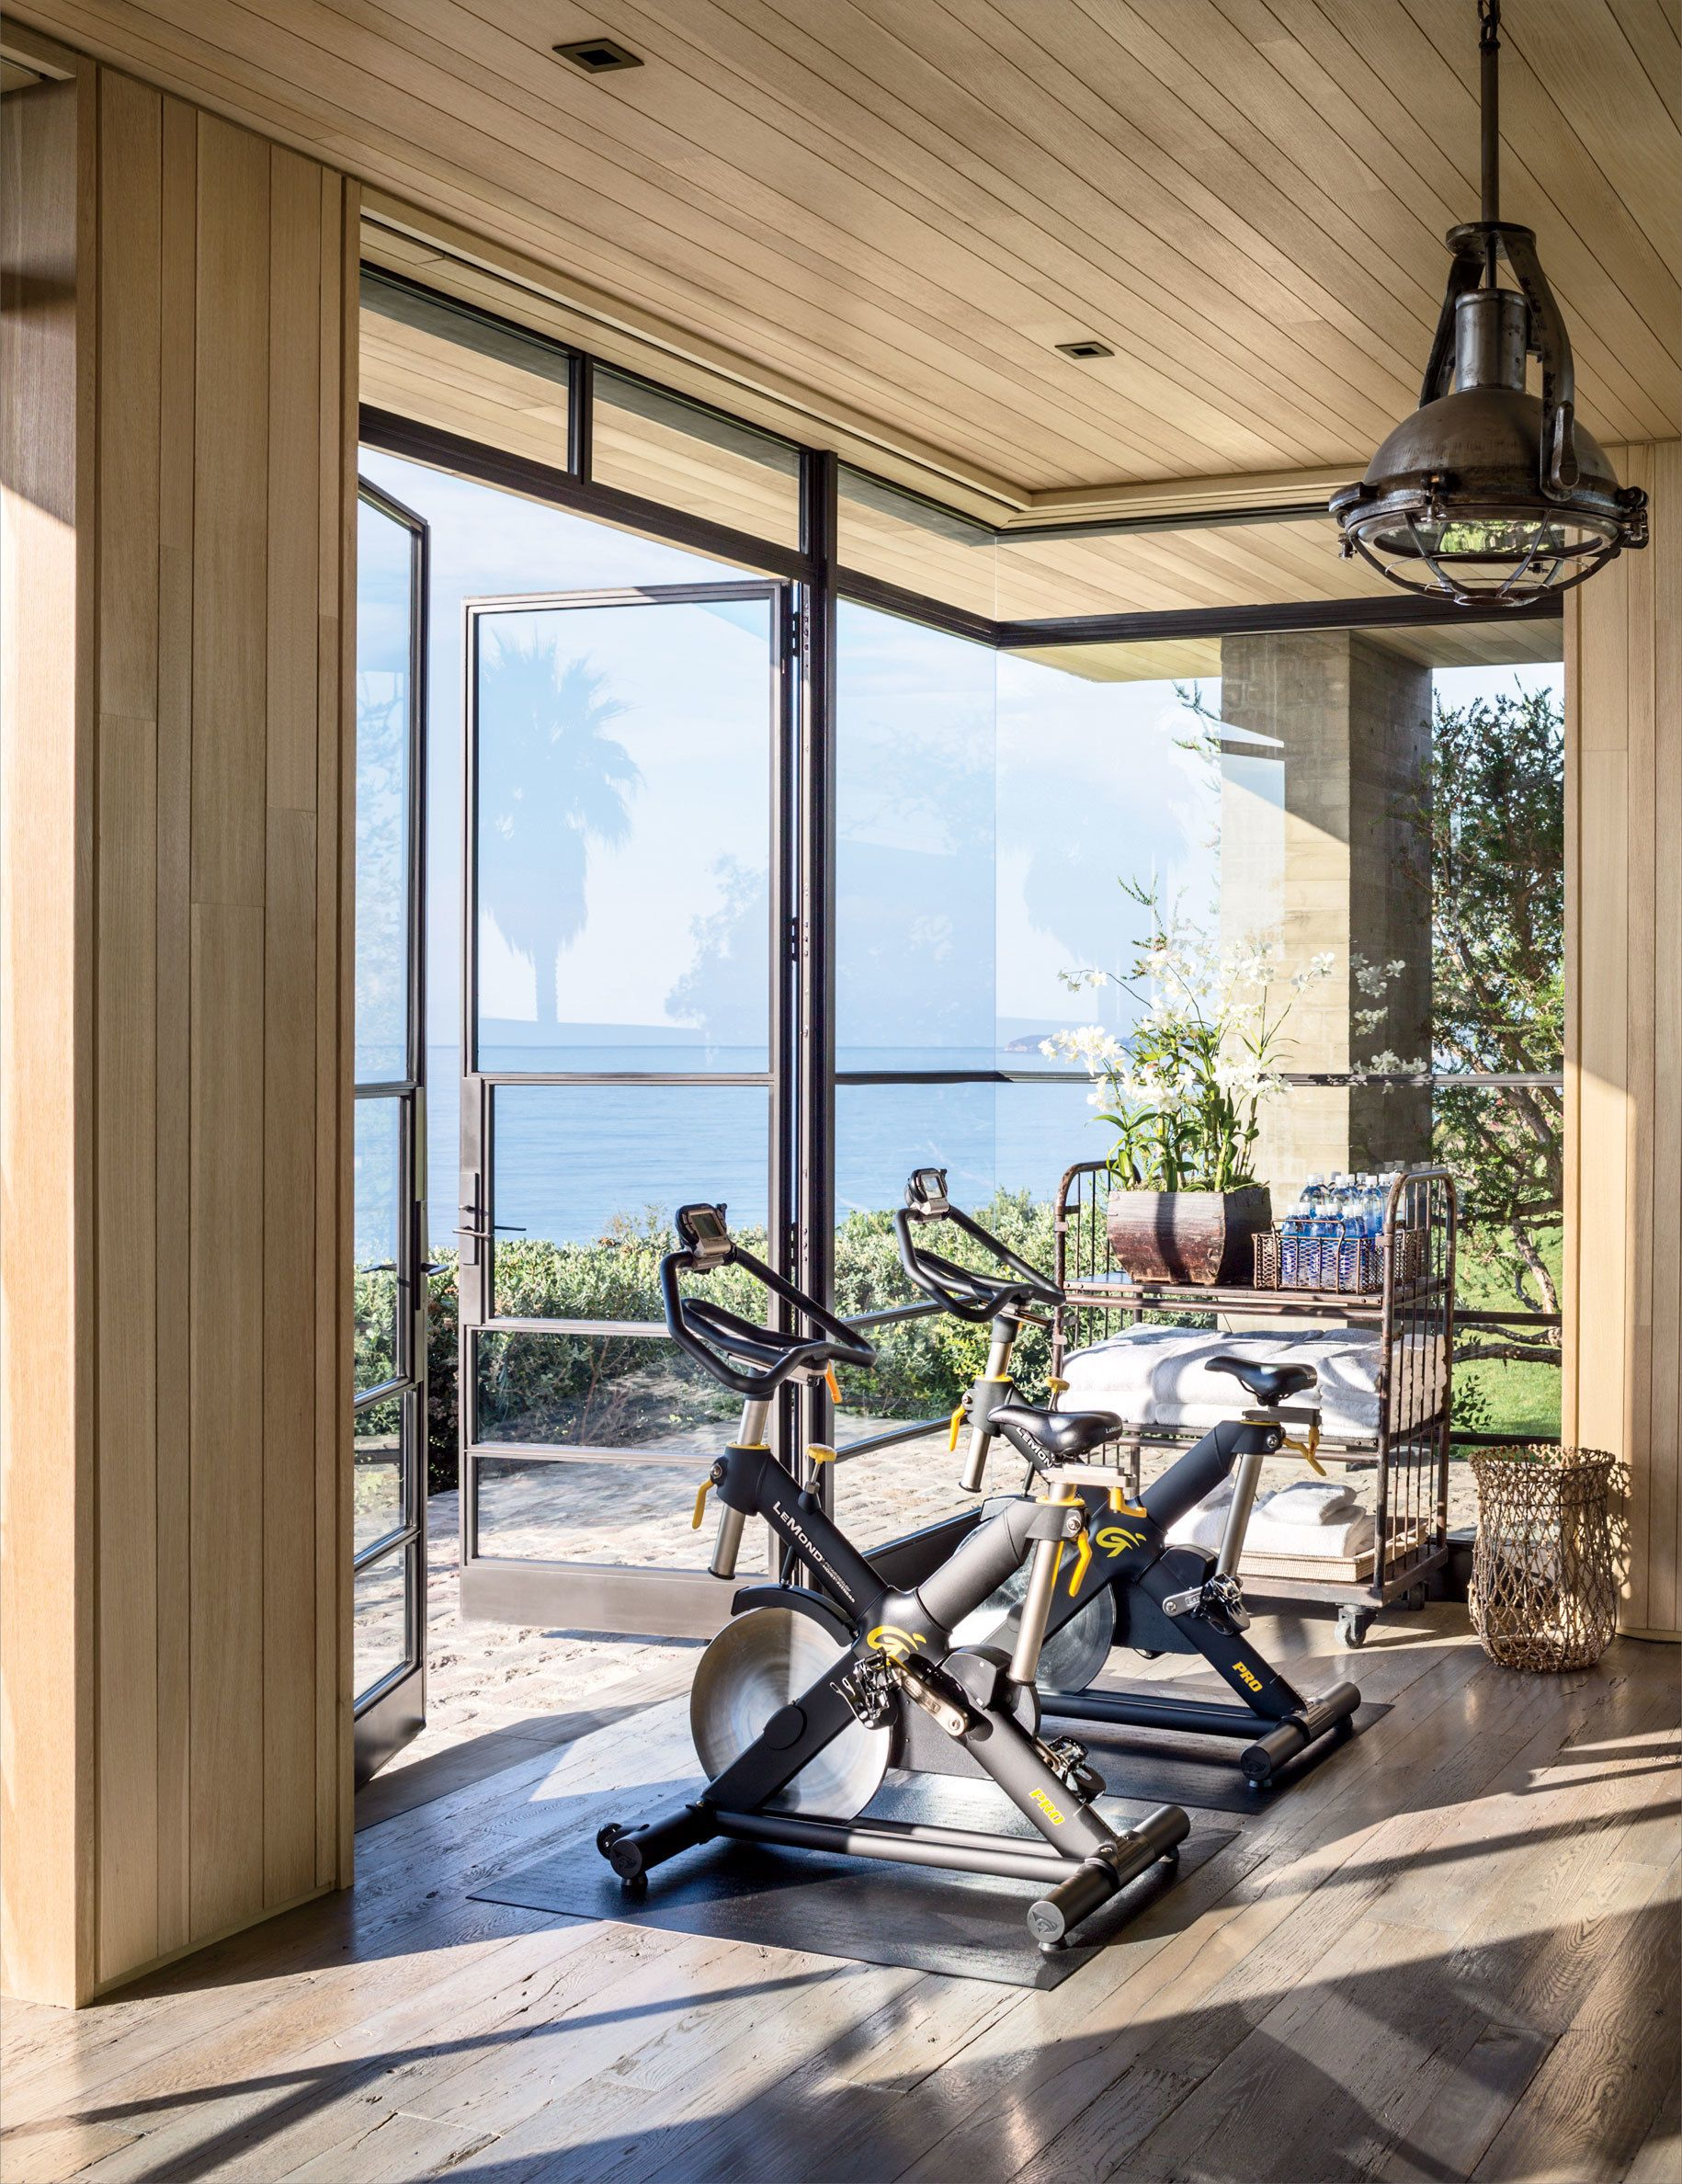 10 Home Gyms That Will Inspire You to Sweat | Gym, Window and Gym ...